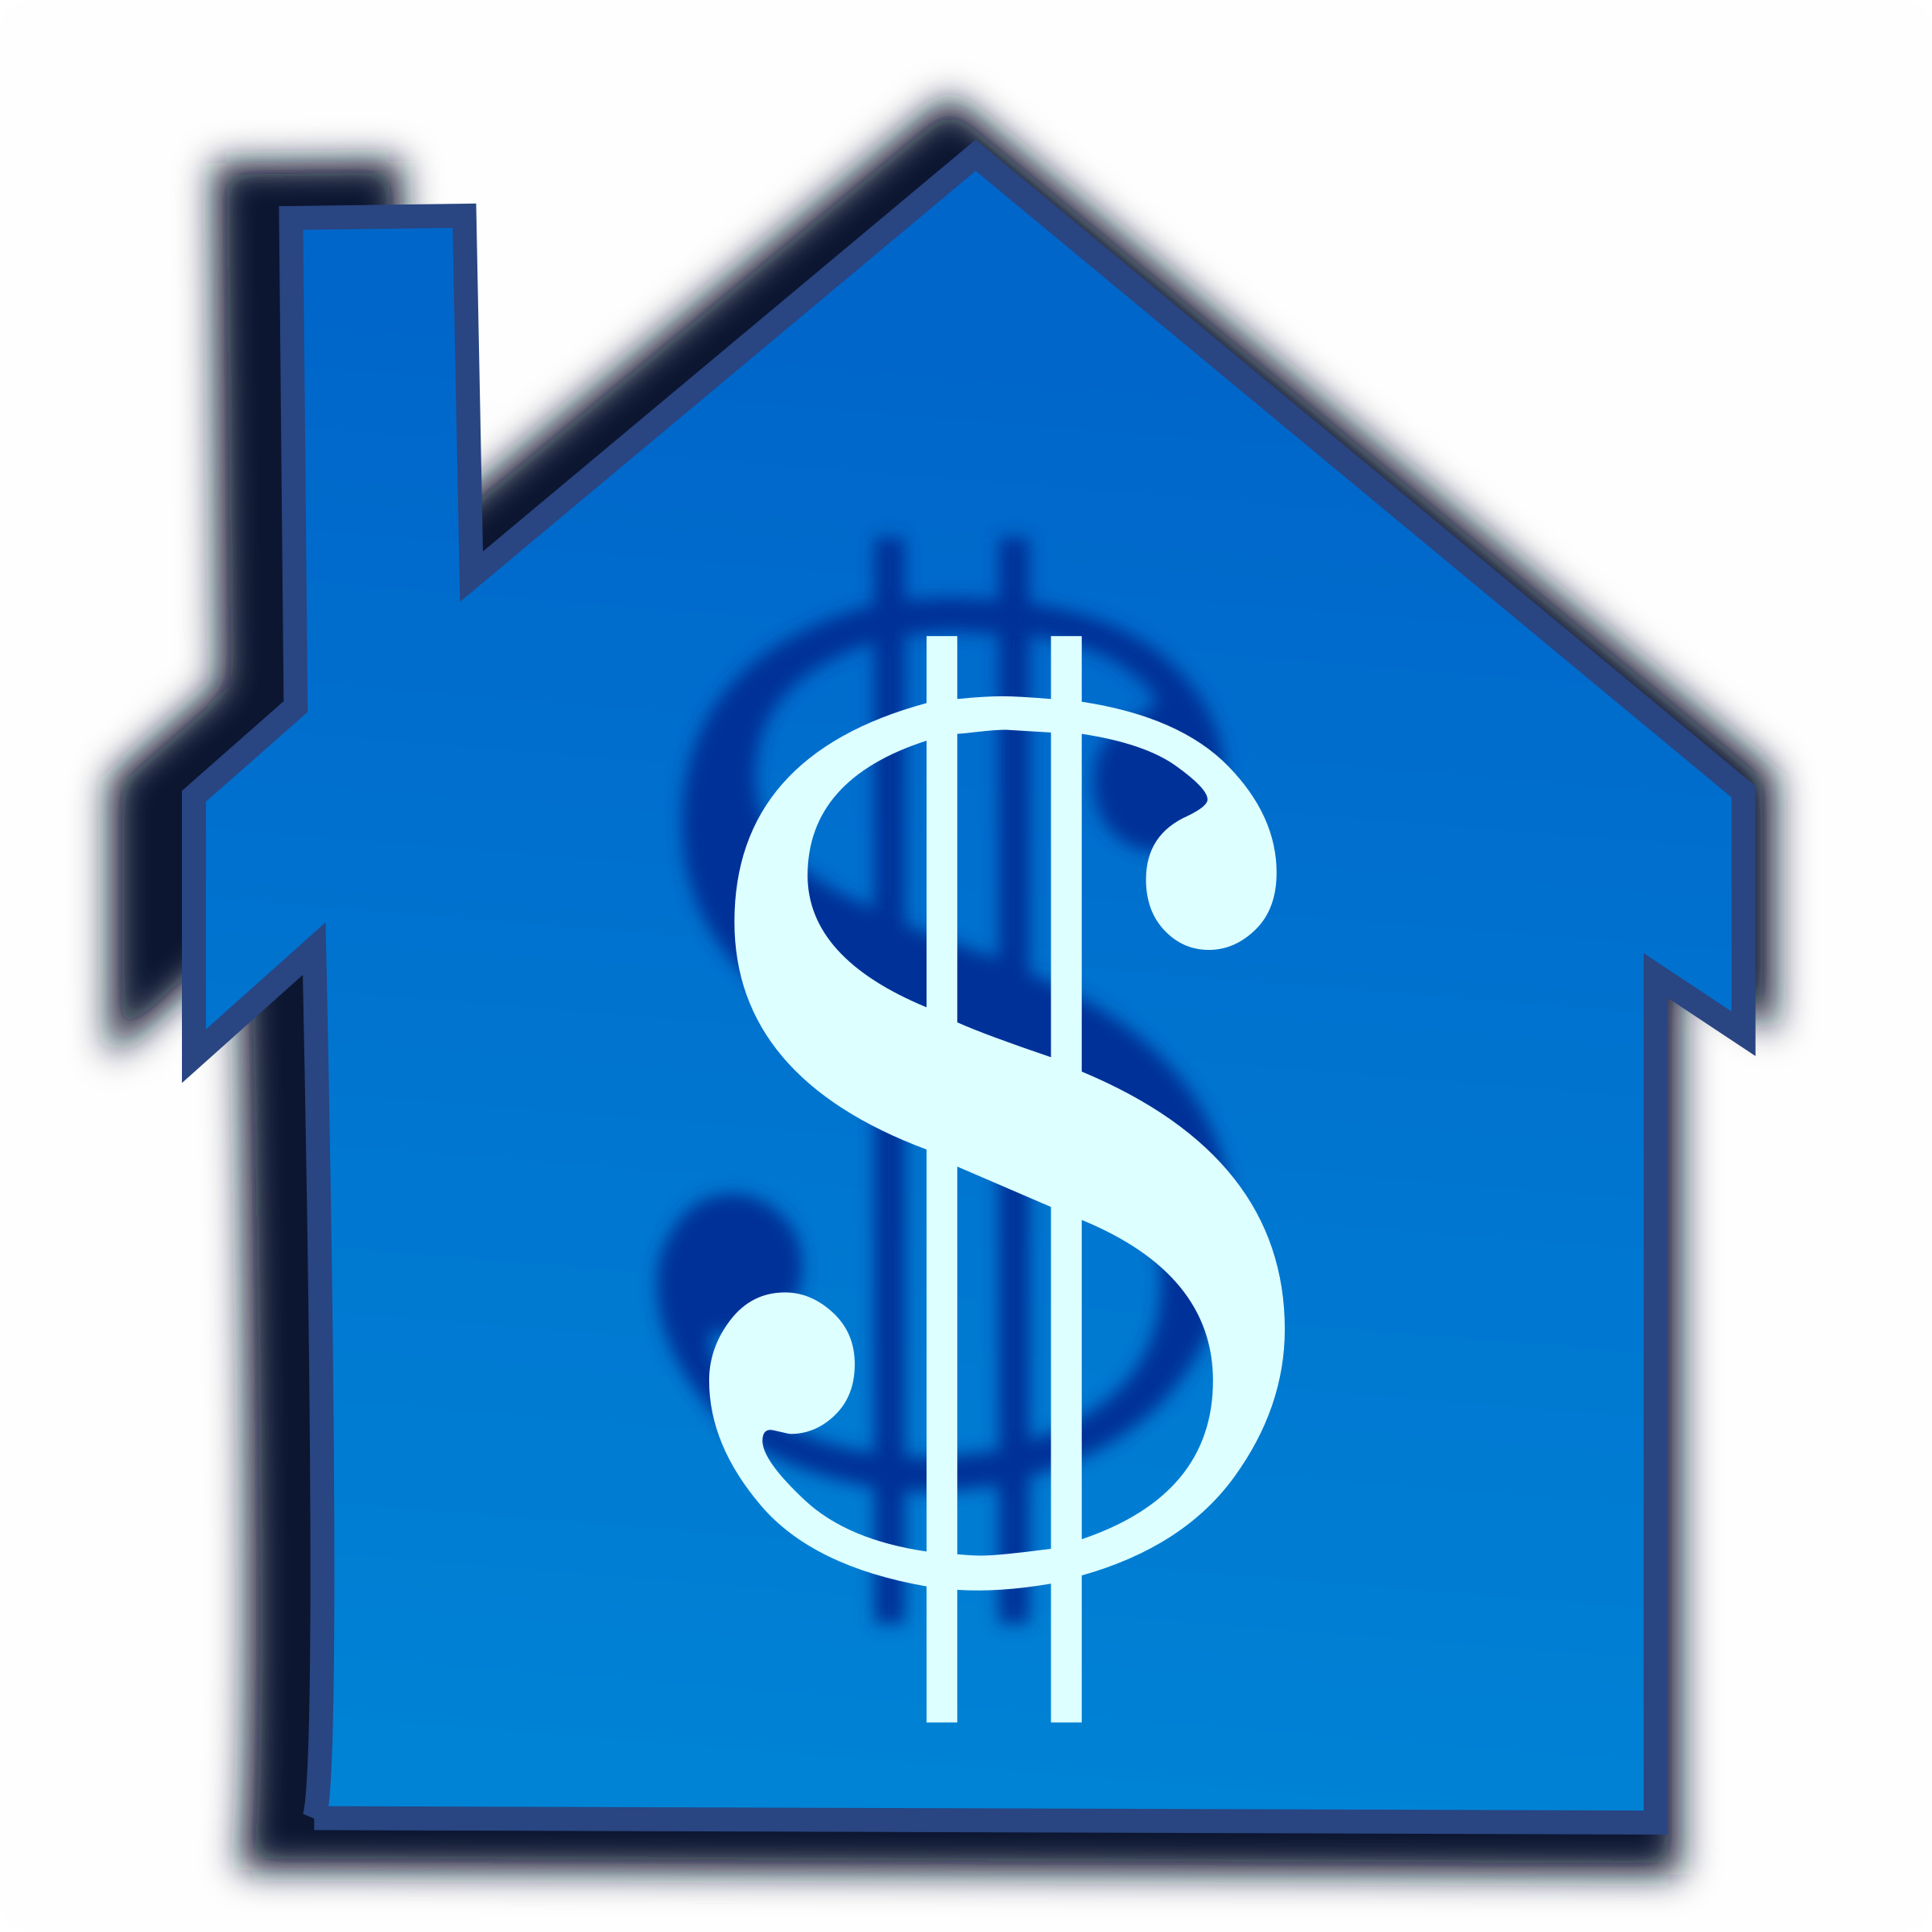 Dollars clipart blue. Home price big image